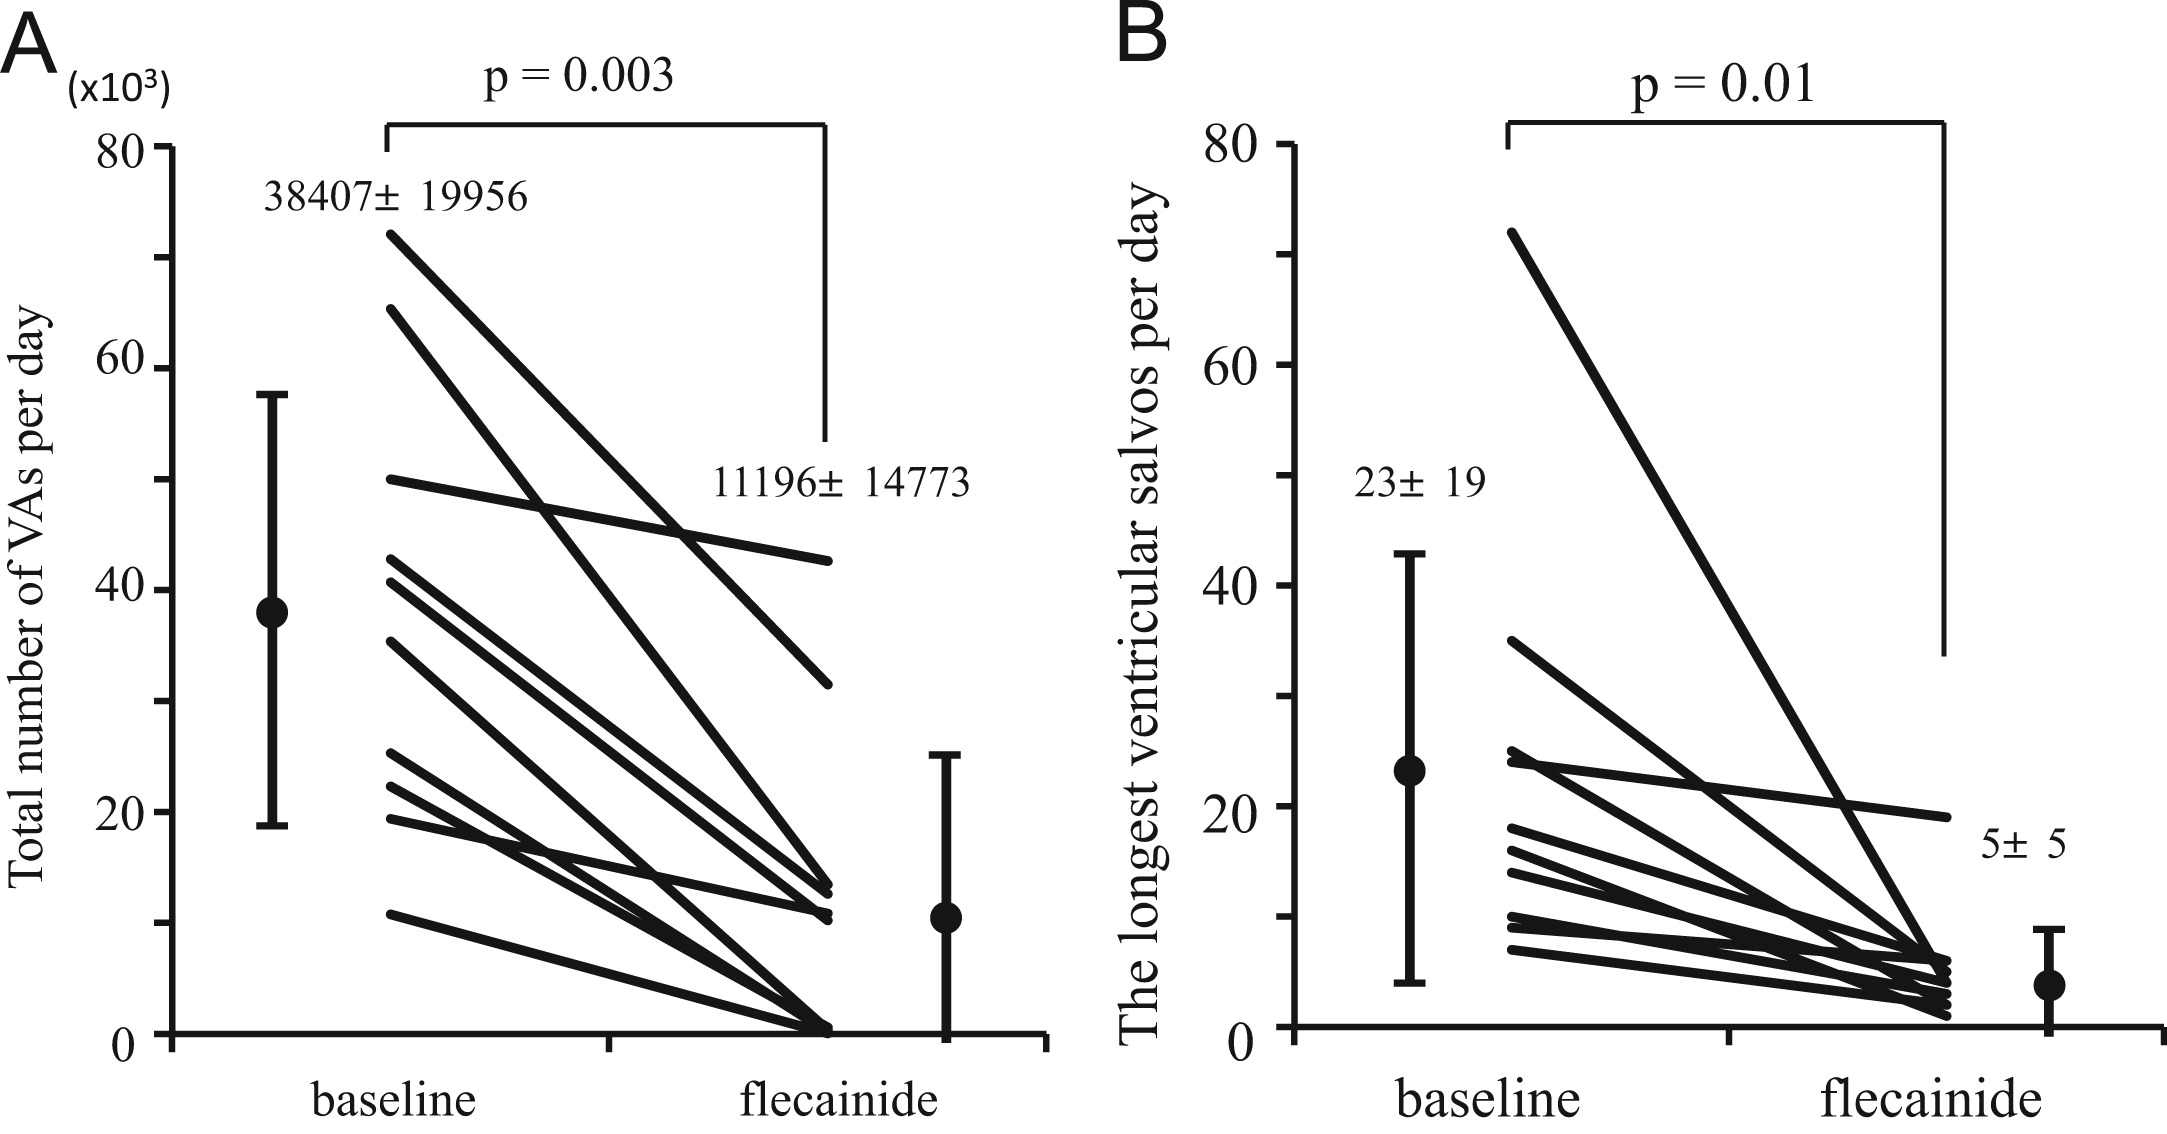 Efficacy And Safety Of Flecainide For Ventricular Arrhythmias In Patients With Andersen Tawil